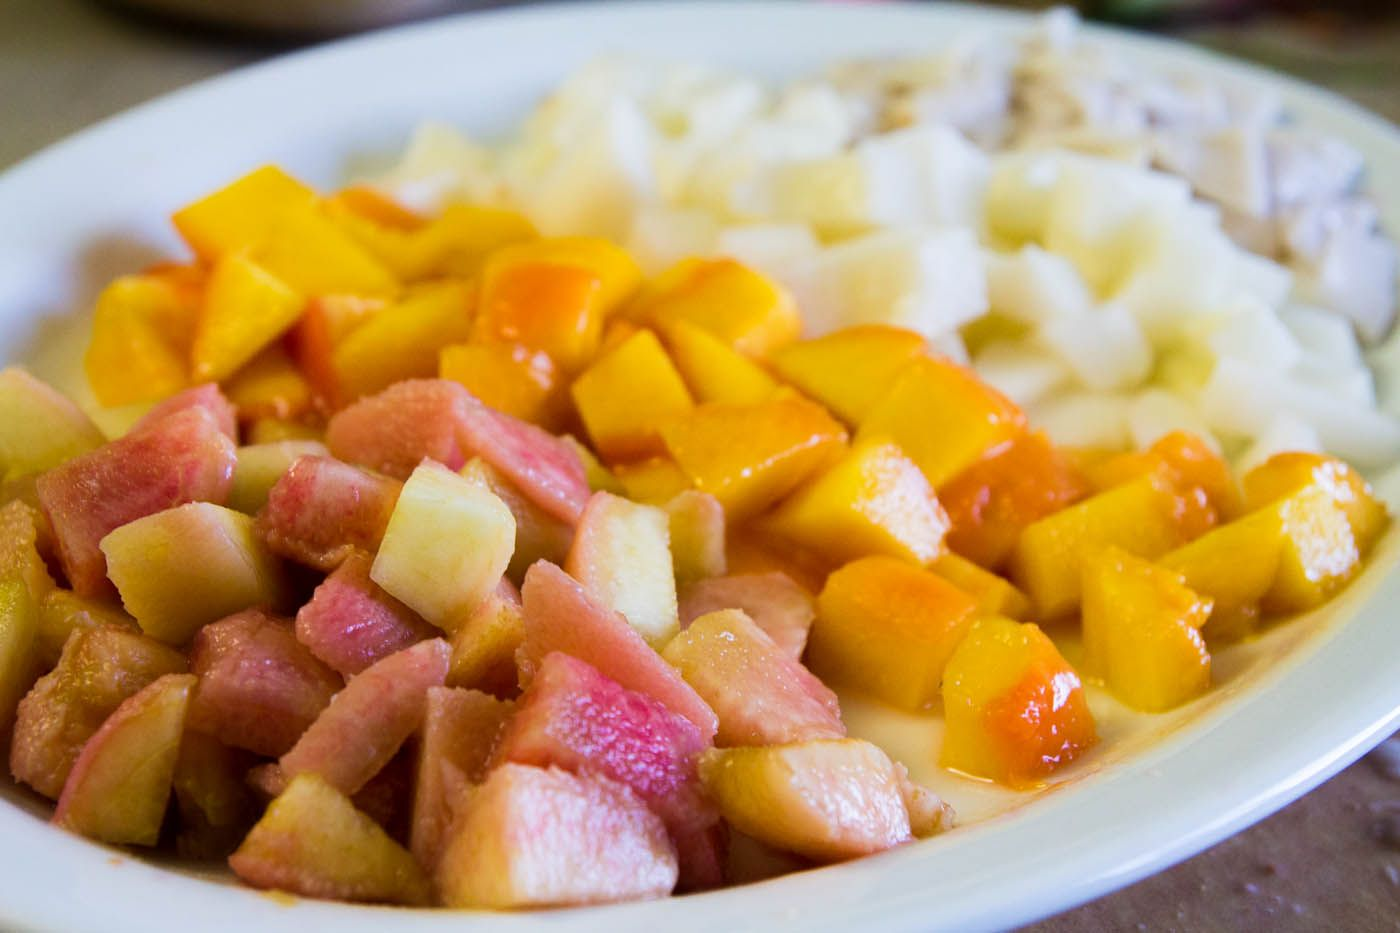 Indian Style Fruit Salad - Indiaphile